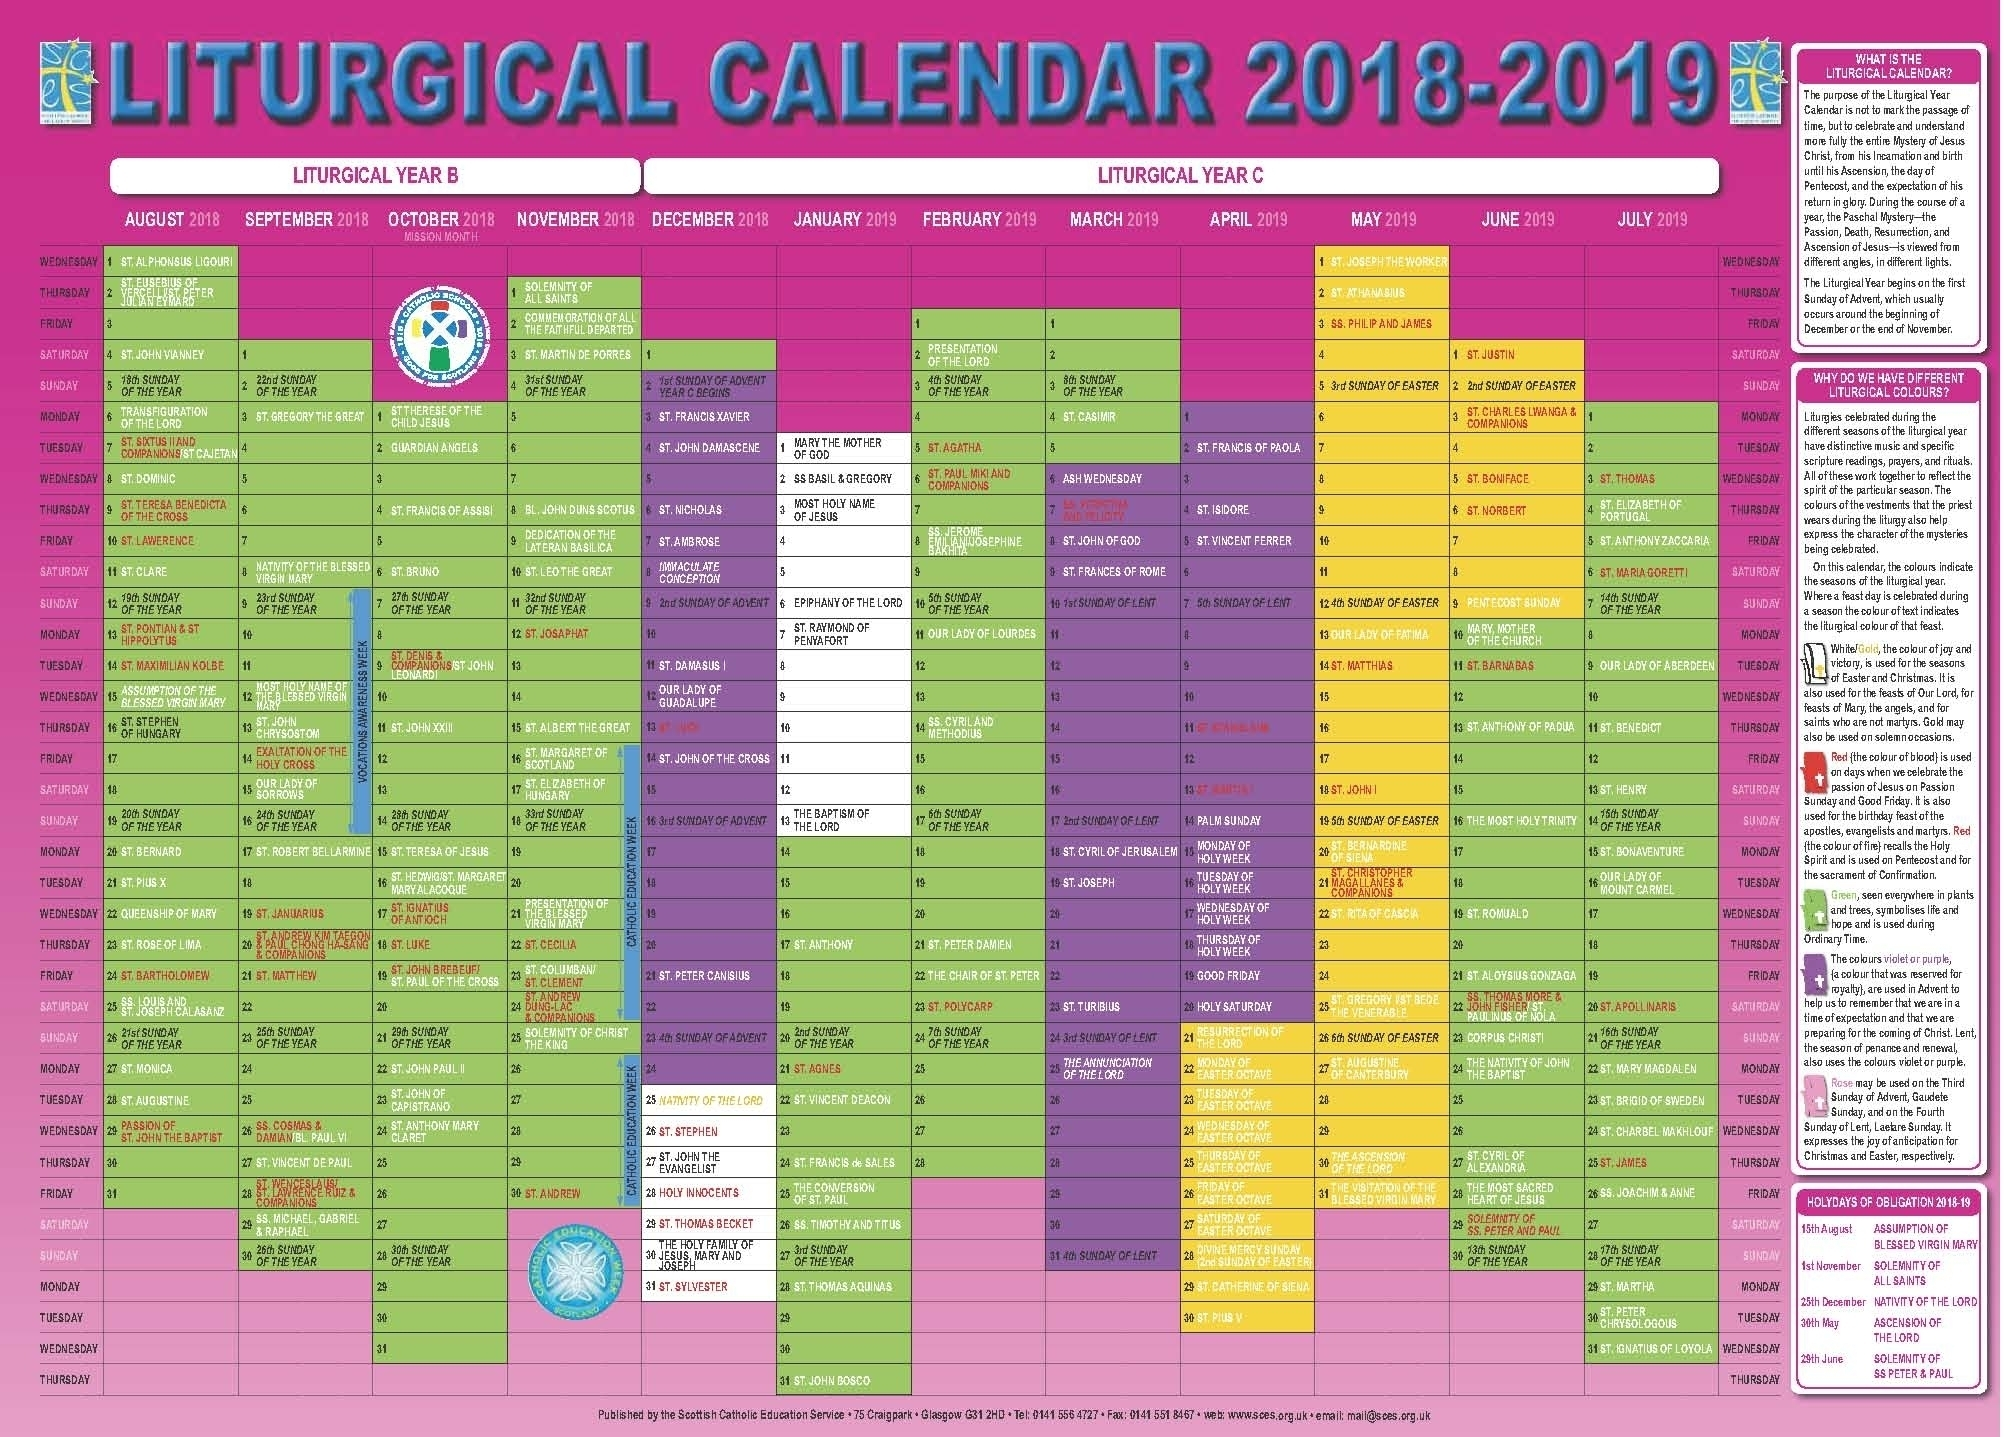 Catholic Liturgical Calendar 2020 Pdf - Calendar Inspiration with regard to 2020 Liturgical Calendar Year A